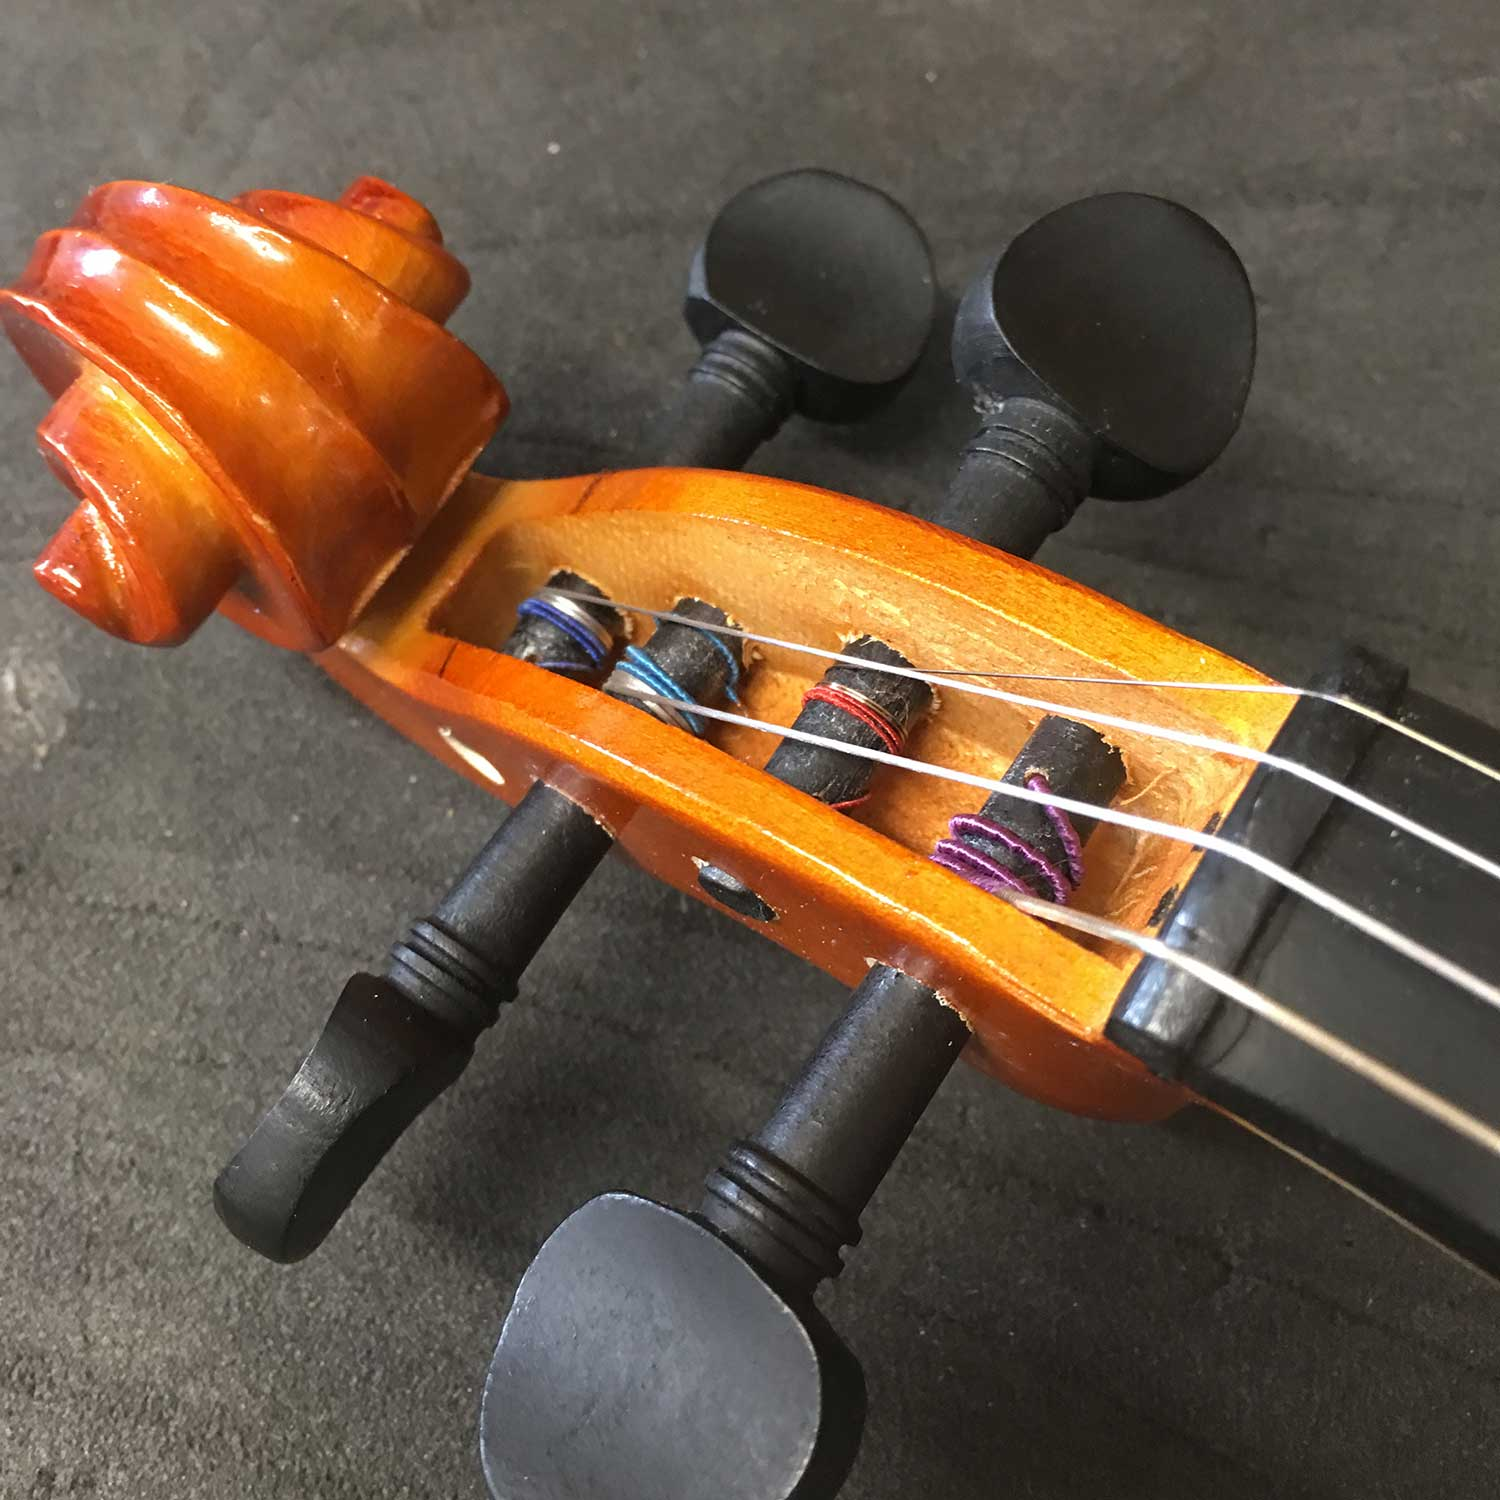 Cheap Violin - Badly Fitted Pegs & Cheap Wood